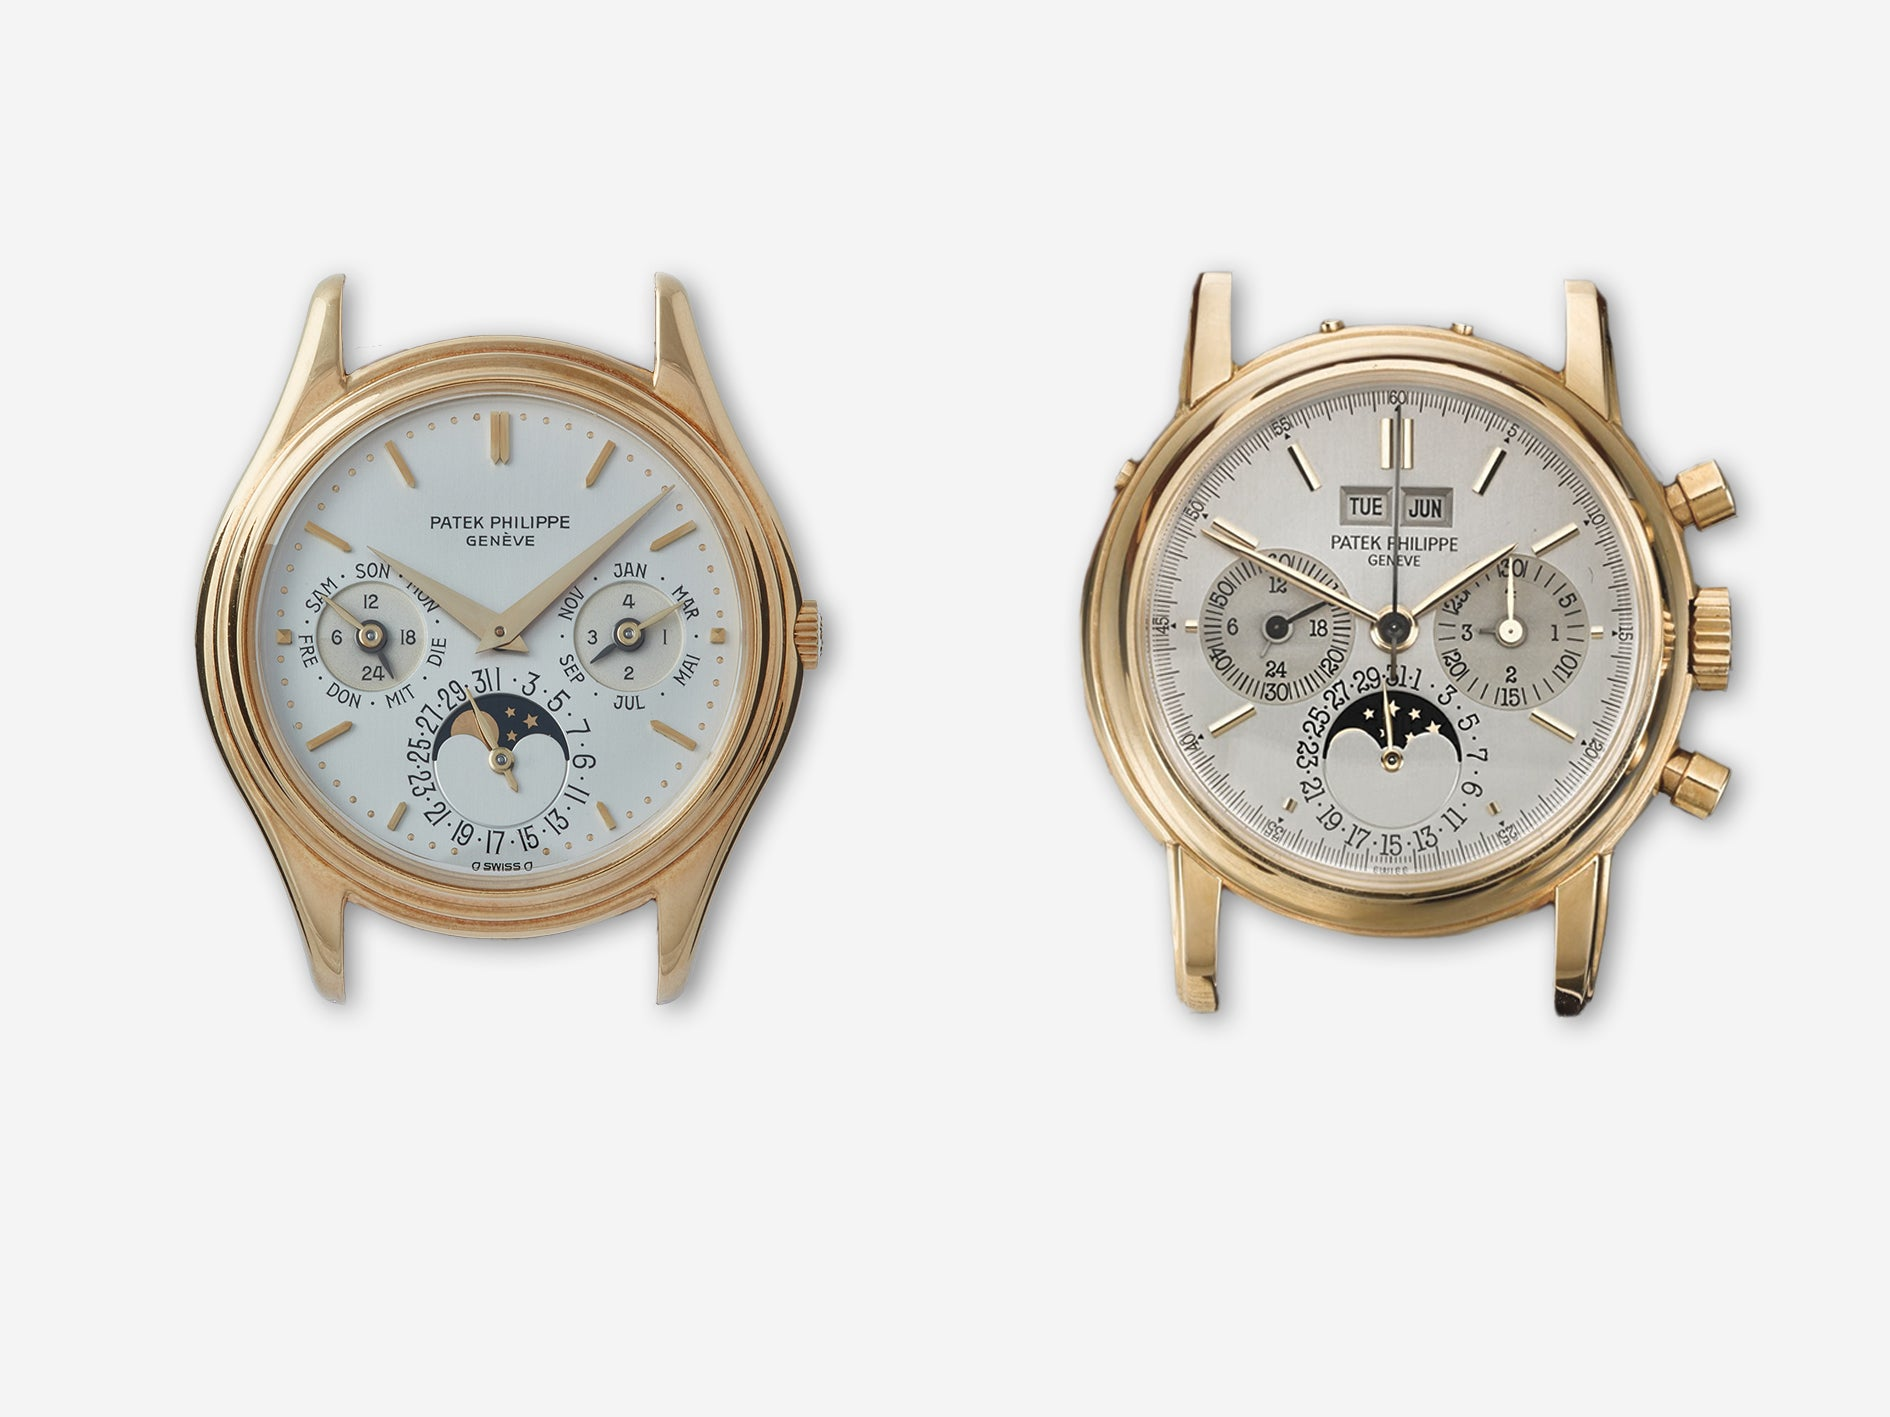 Patek Philippe perpetual calendars 3940 and 3970 on white background in Transitional watches for A Collected Man London